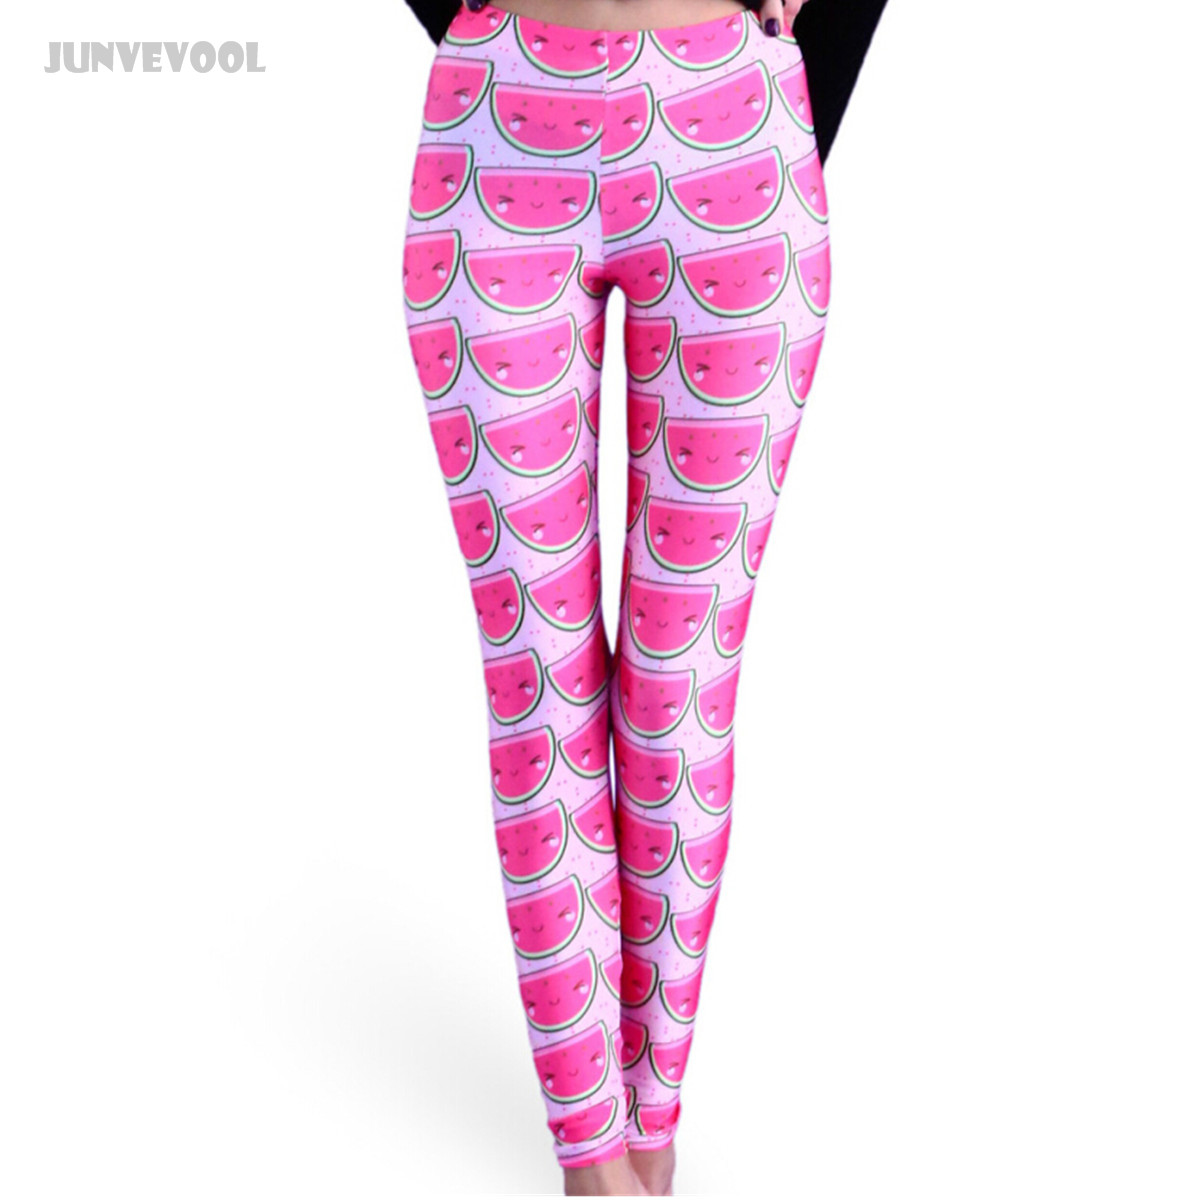 Workout Slim Hot Pink Watermelon Printed Leggings Womens Tattoo Leg Pants Ankle Length Trousers Fashion Candy Color Pants Red